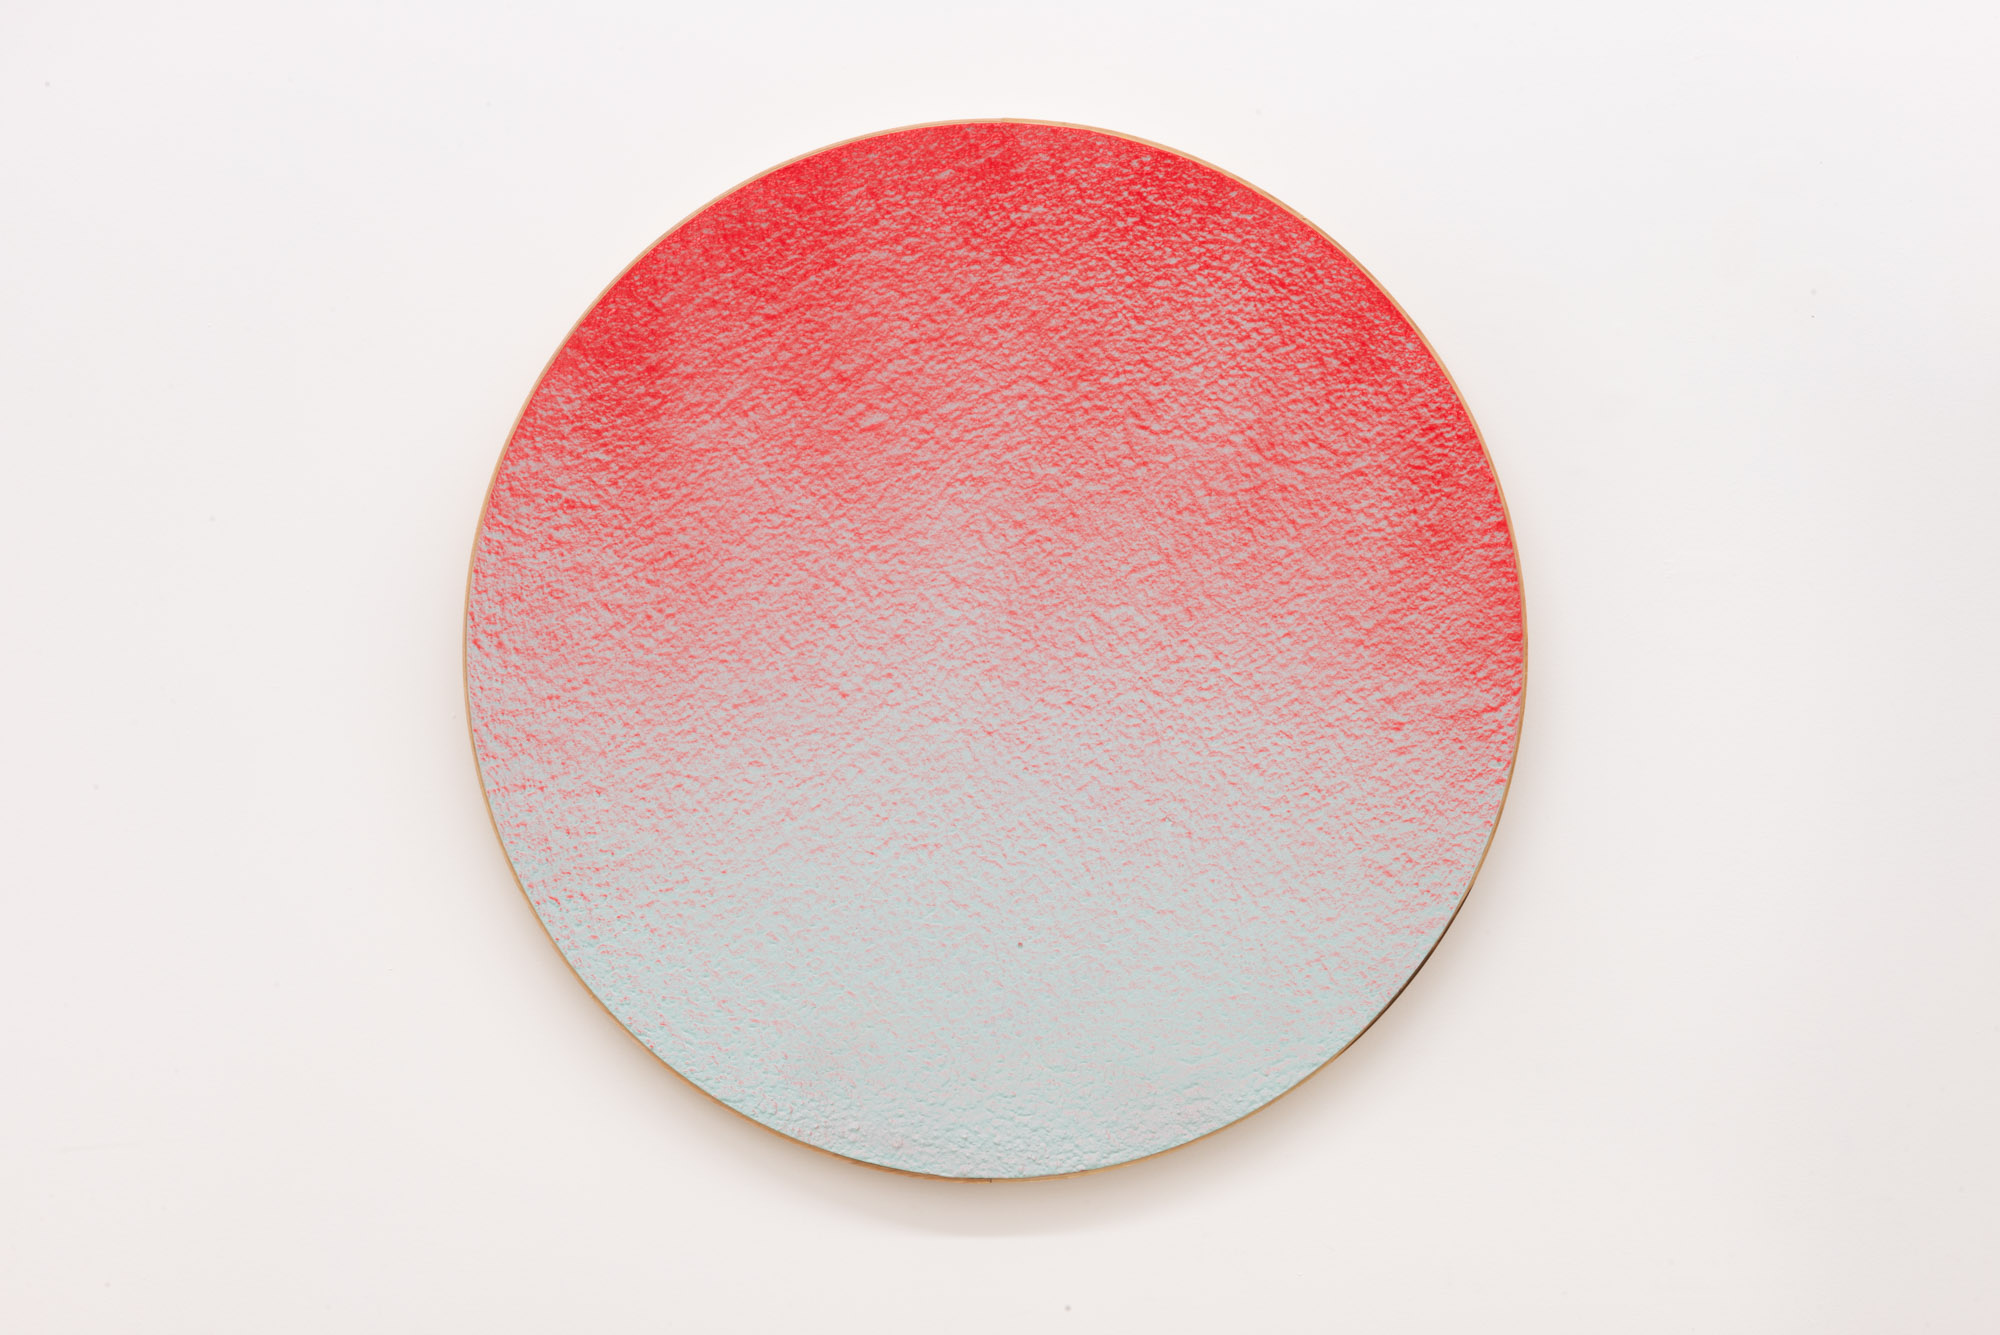 """Pierre Julien,  In the Deepest Oceans  - C003, 2018, stucco, acrylic and spray paint on wood panel, 30"""" diameter (76 cm)"""